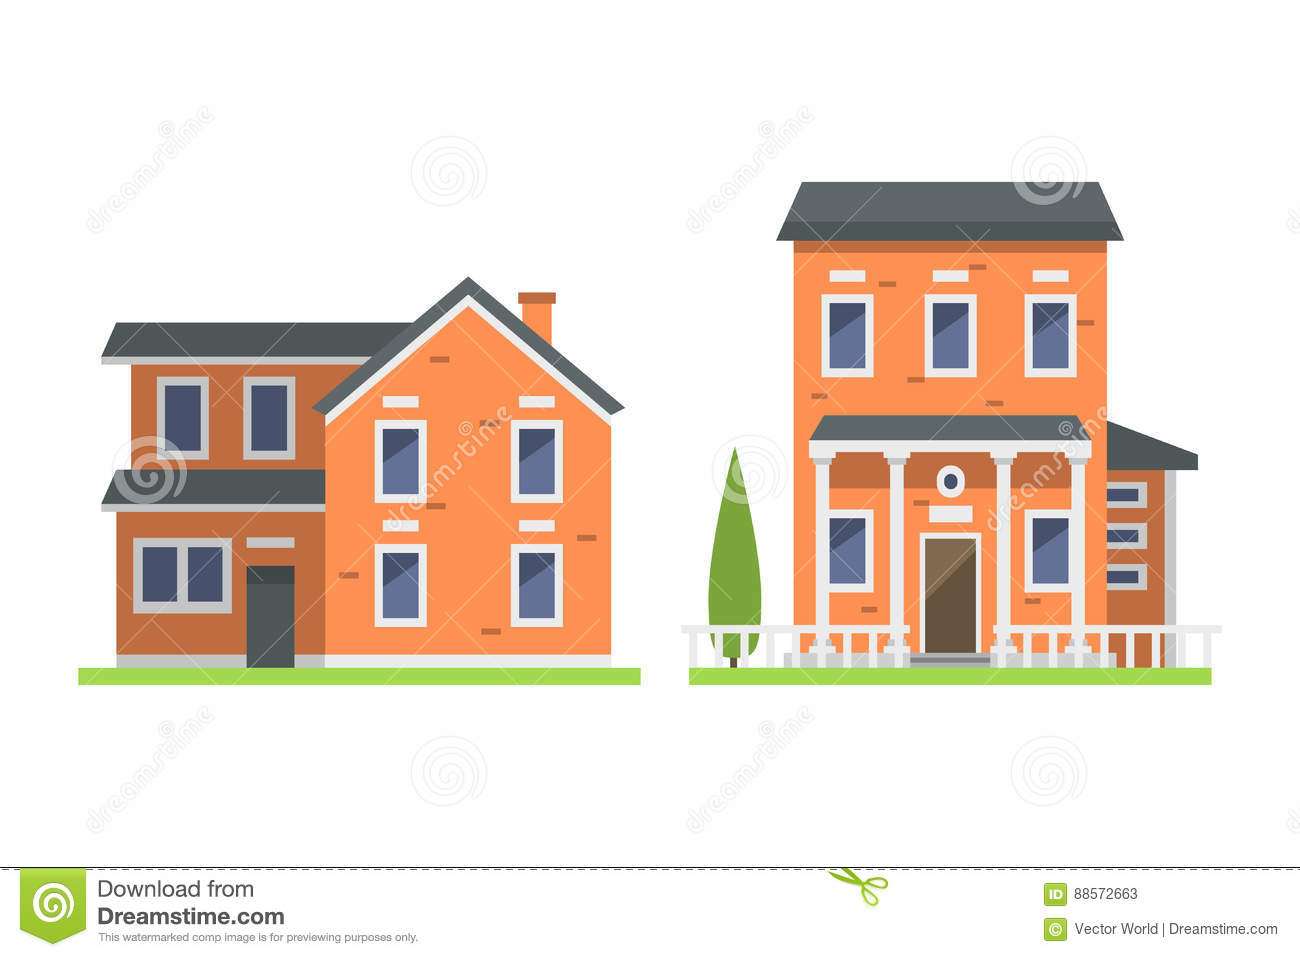 Cute Colorful Flat Style House Village Symbol Real Estate Cottage And Home Design Residential Colorful Building Stock Vector Illustration Of Graphic Construction 88572663